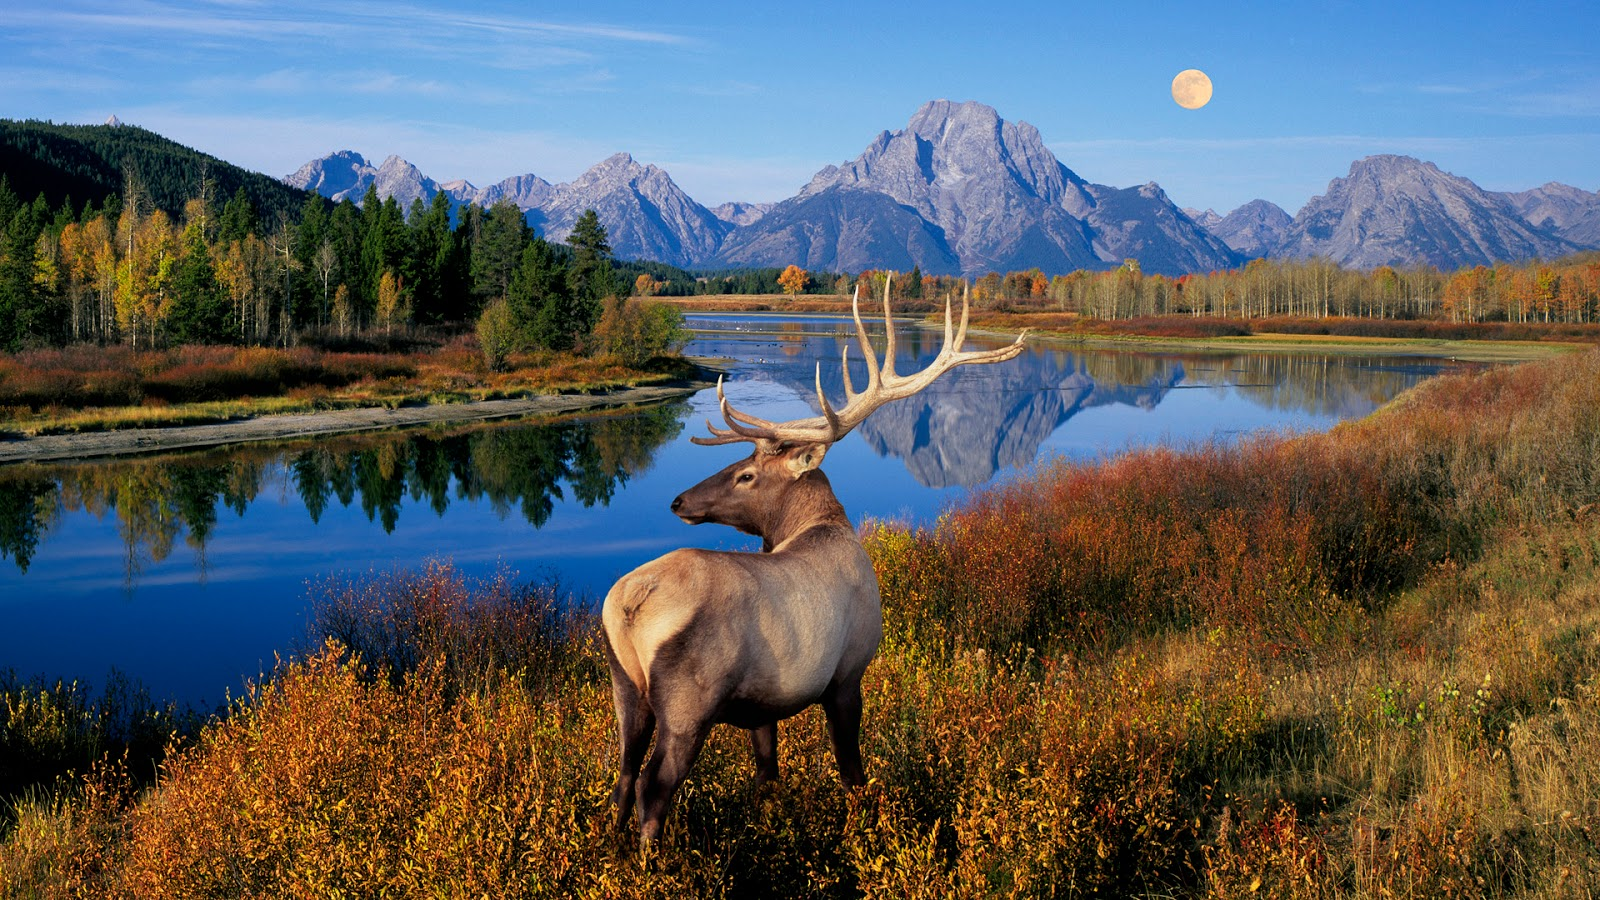 Nature world scenery hd wallpapers update for Deer scenery